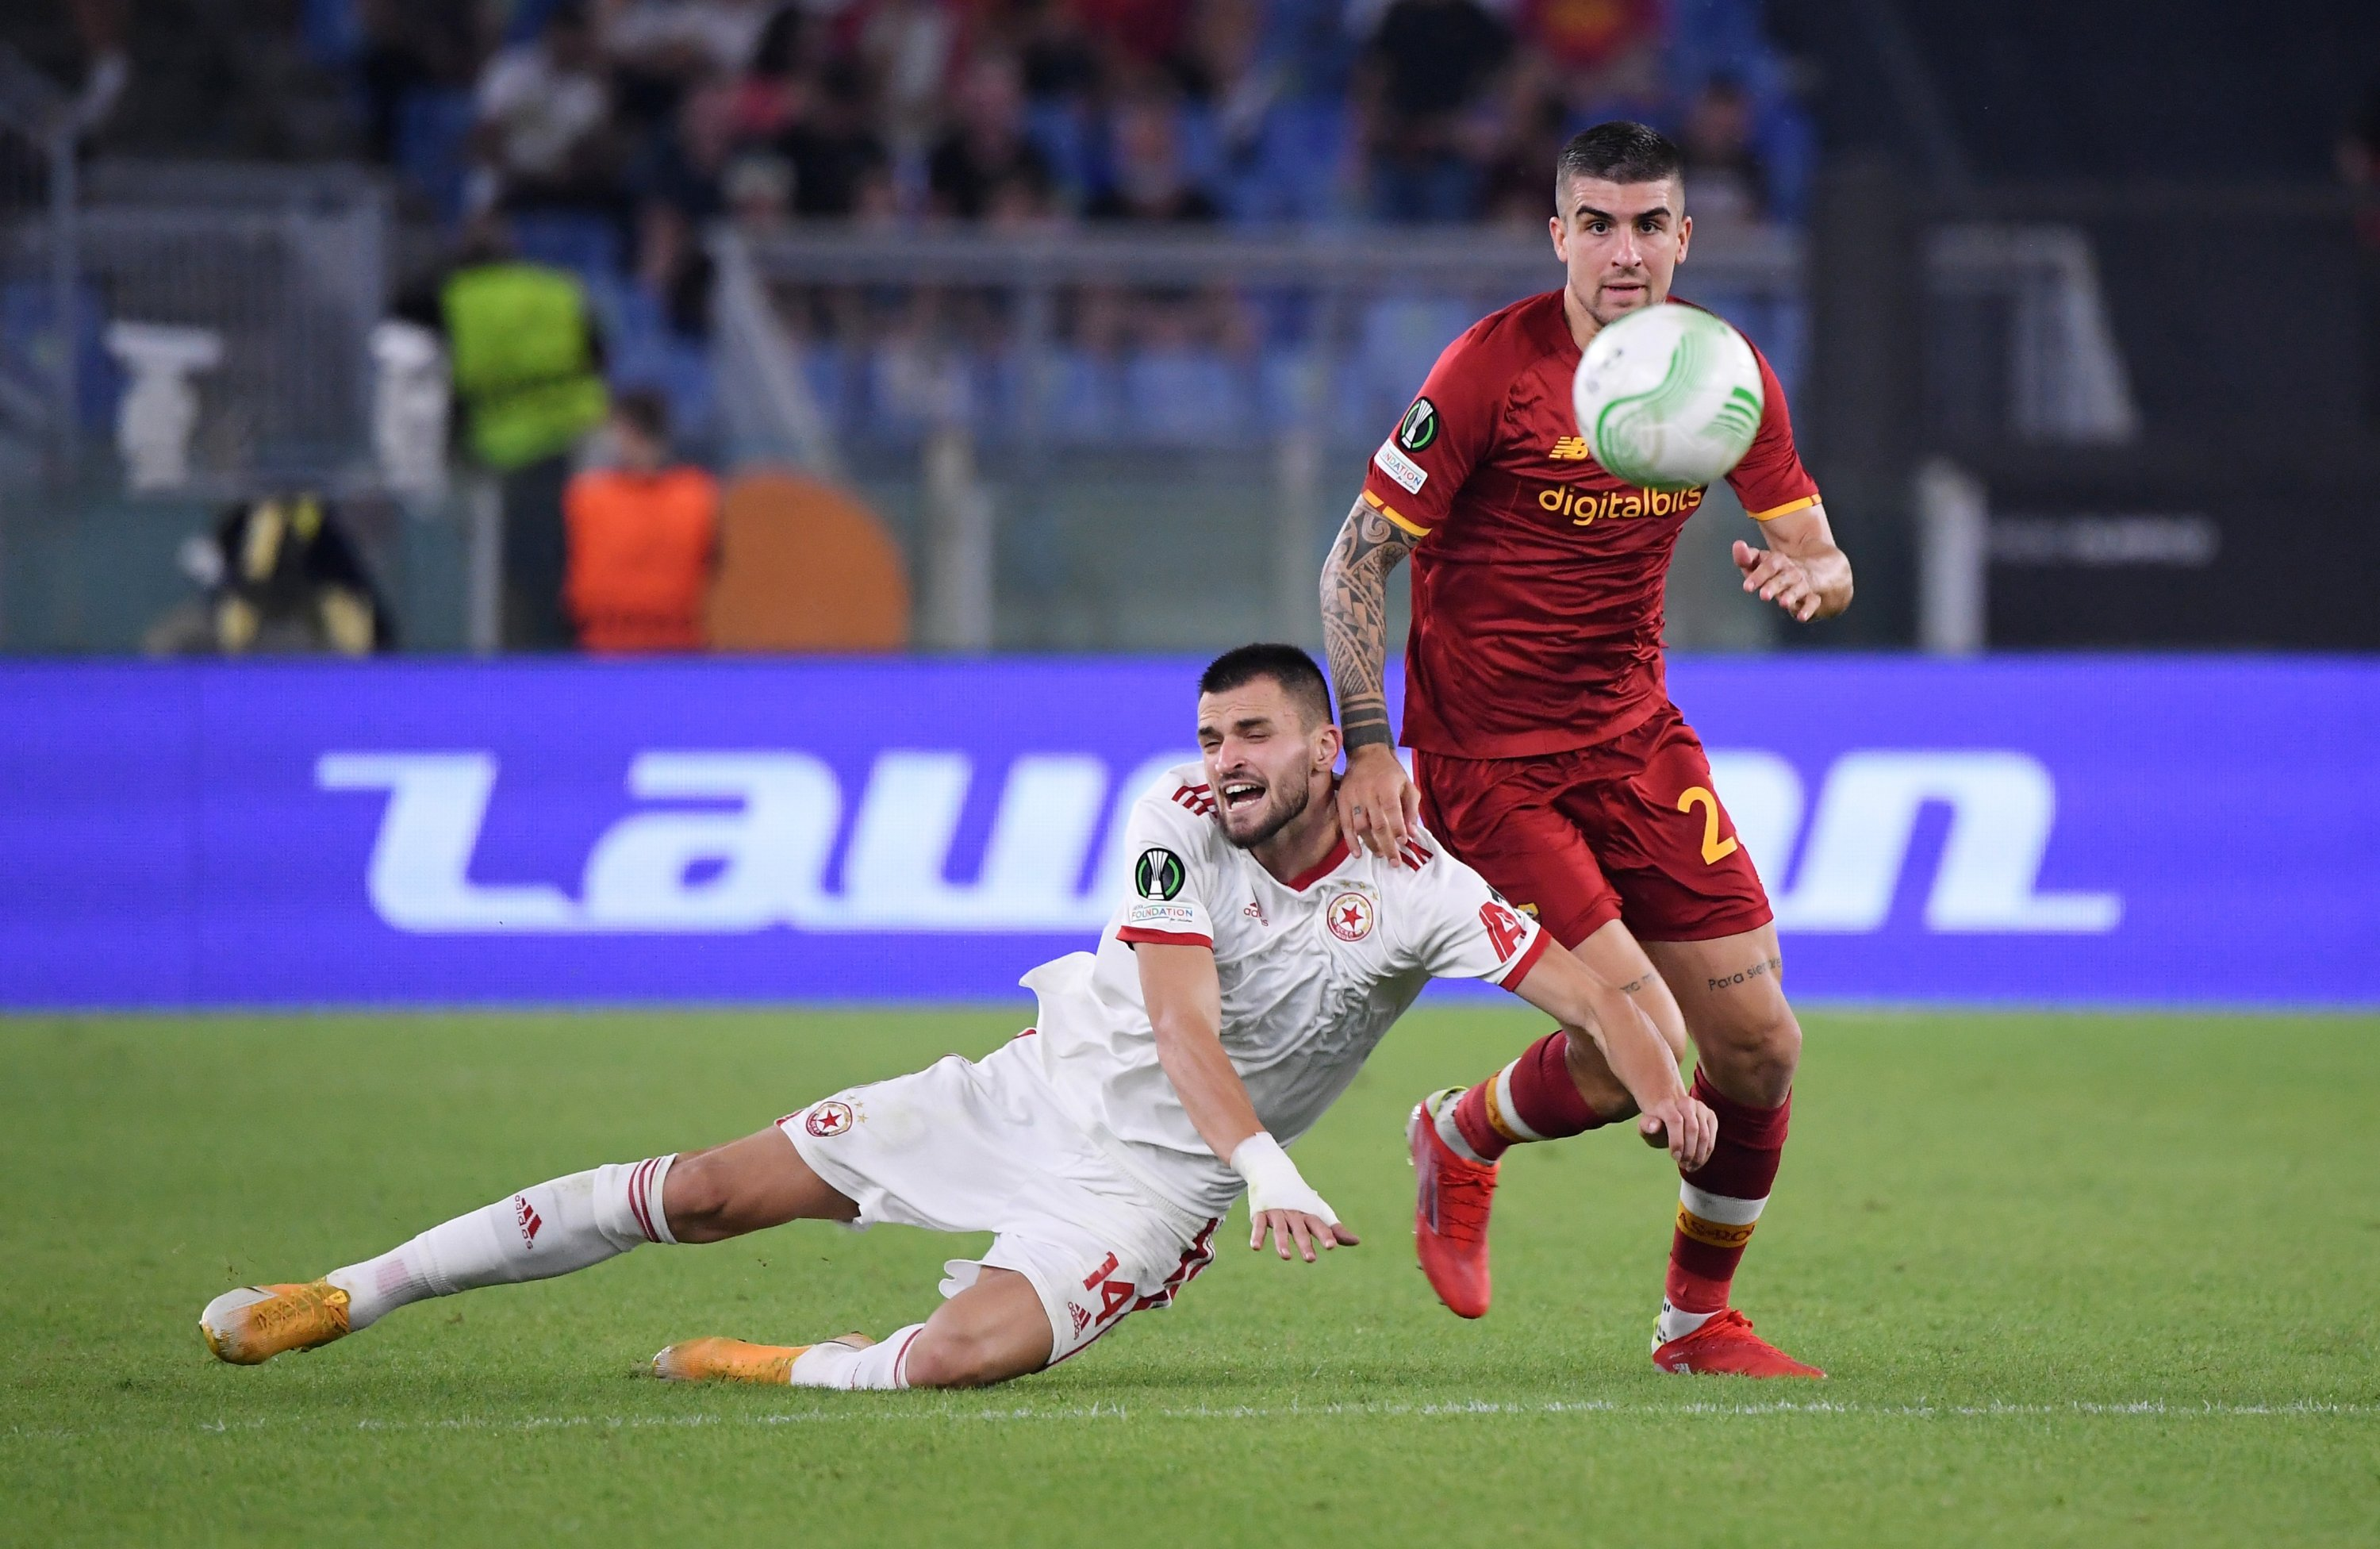 AS Roma's Gianluca Mancini in action with CSKA Sofia's Kaloyan Krastev during a Europa Conference League match at Stadio Olimpico, Rome, Italy, Sept. 16, 2021. (Reuters Photo)